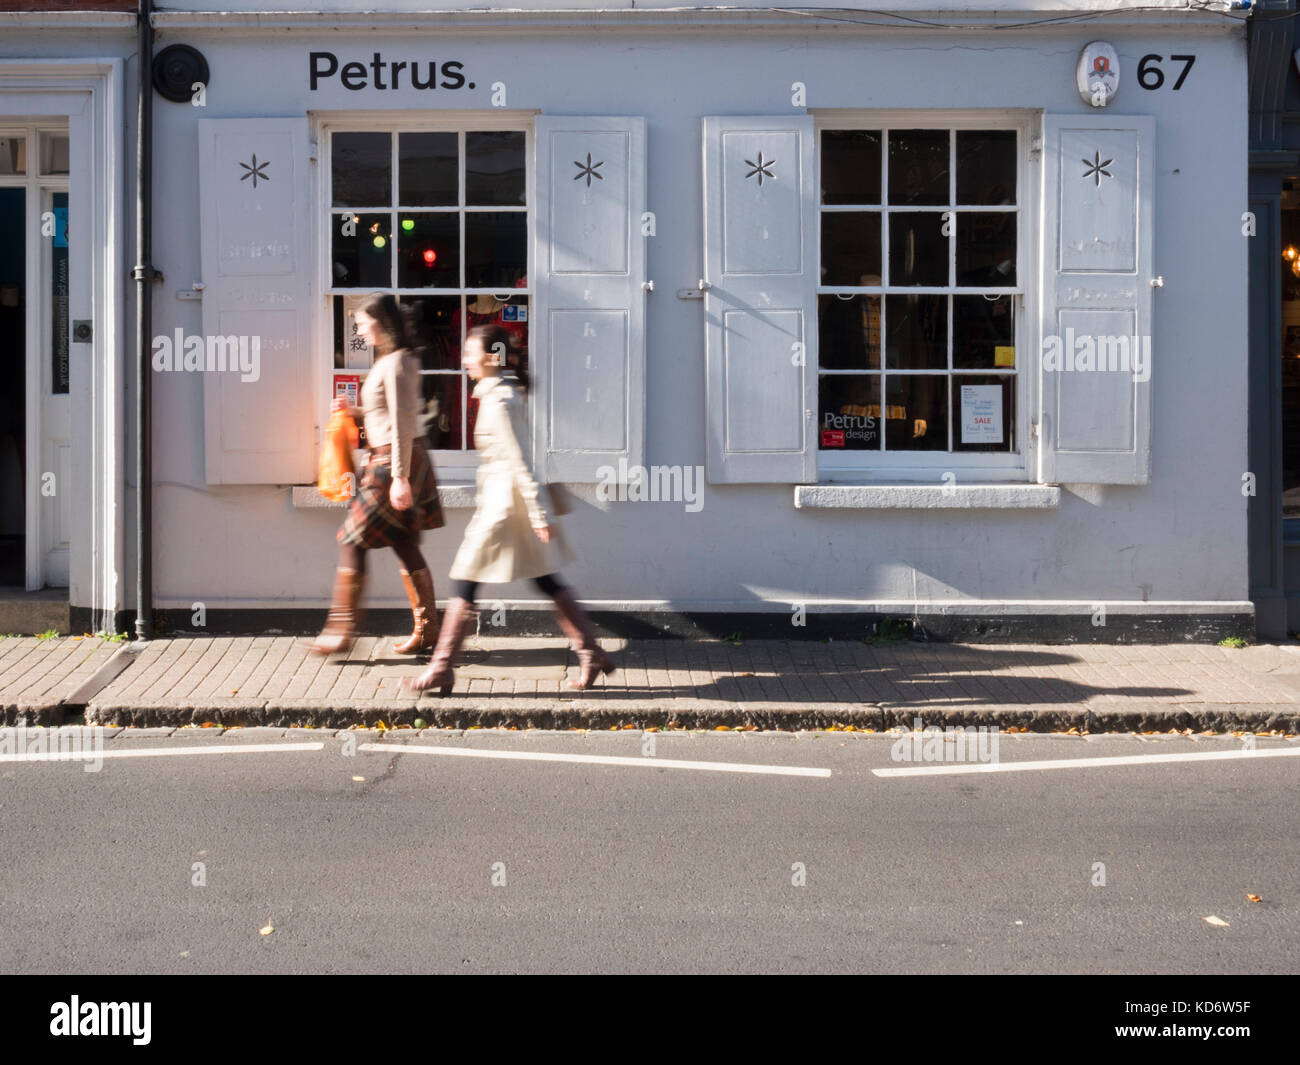 The Petrus Designer clothes shop in Cambridge uk, an independent store. With a passing shoppers with motion blur. - Stock Image